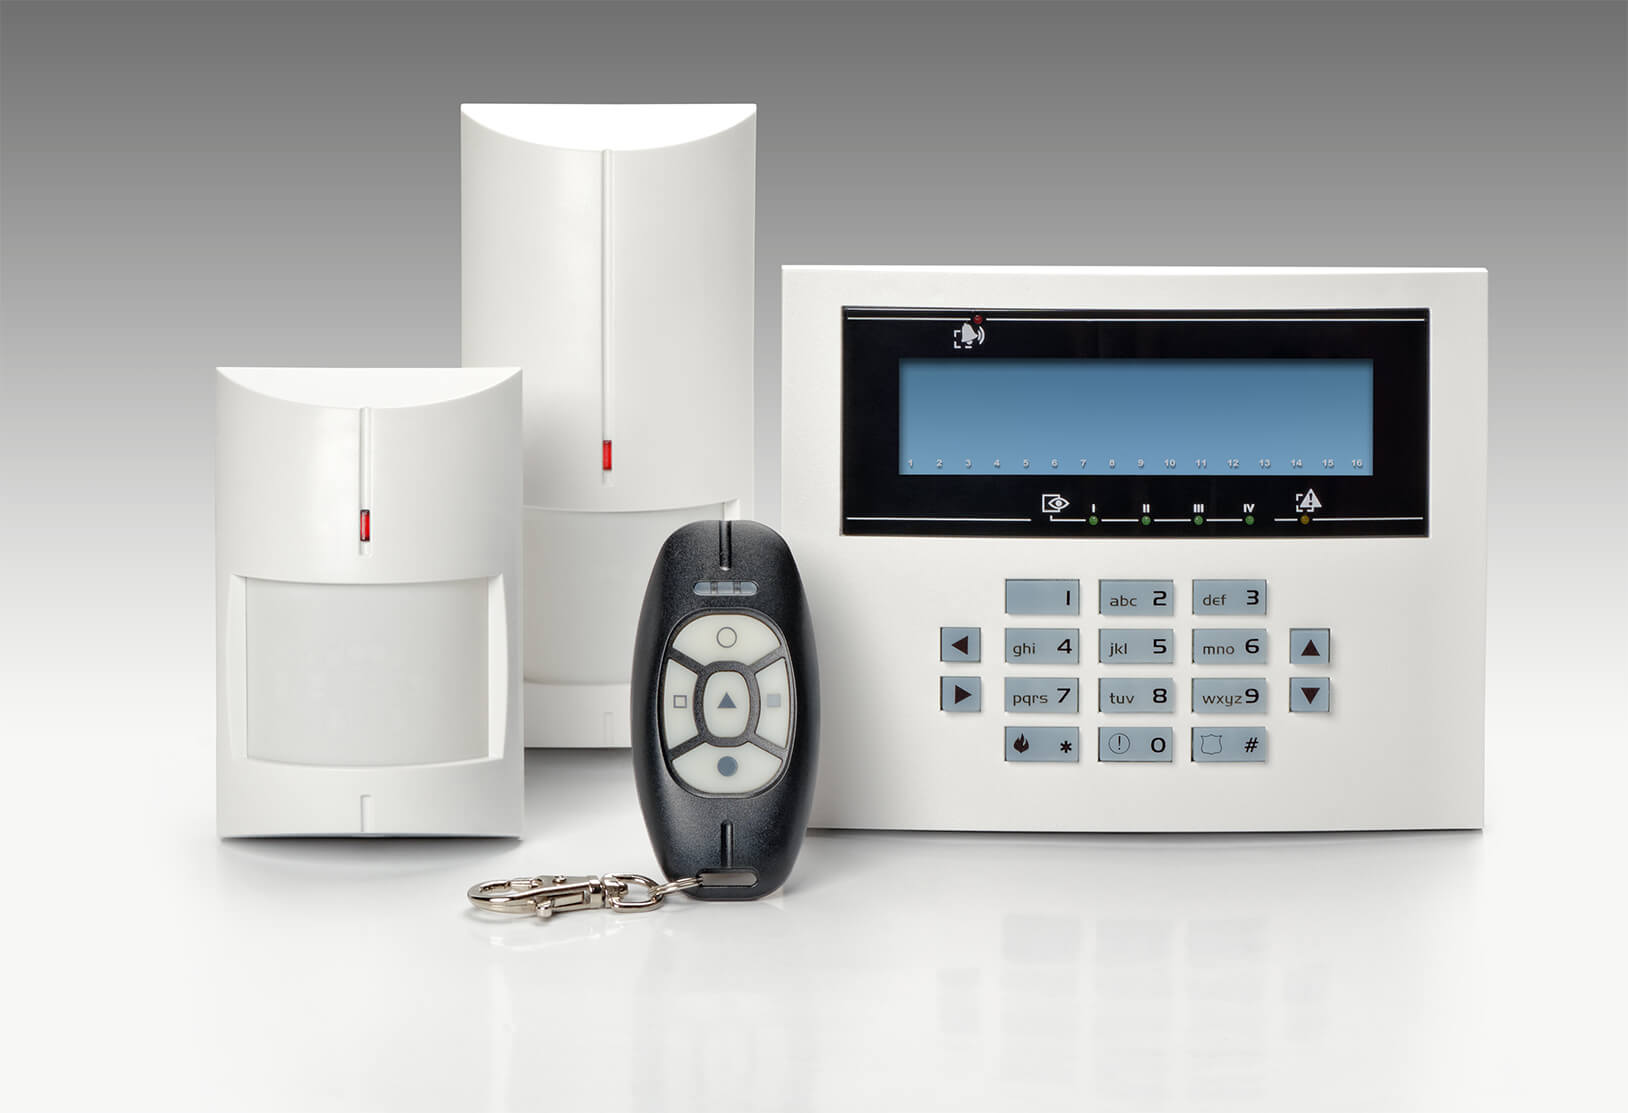 Commercial Burglar Alarms For Business in Battersea SW8  - Local Battersea SW8 burglar alarm company.Call 02078872244 - Dedicated to Safety & Security. Companies, shops and homes ..